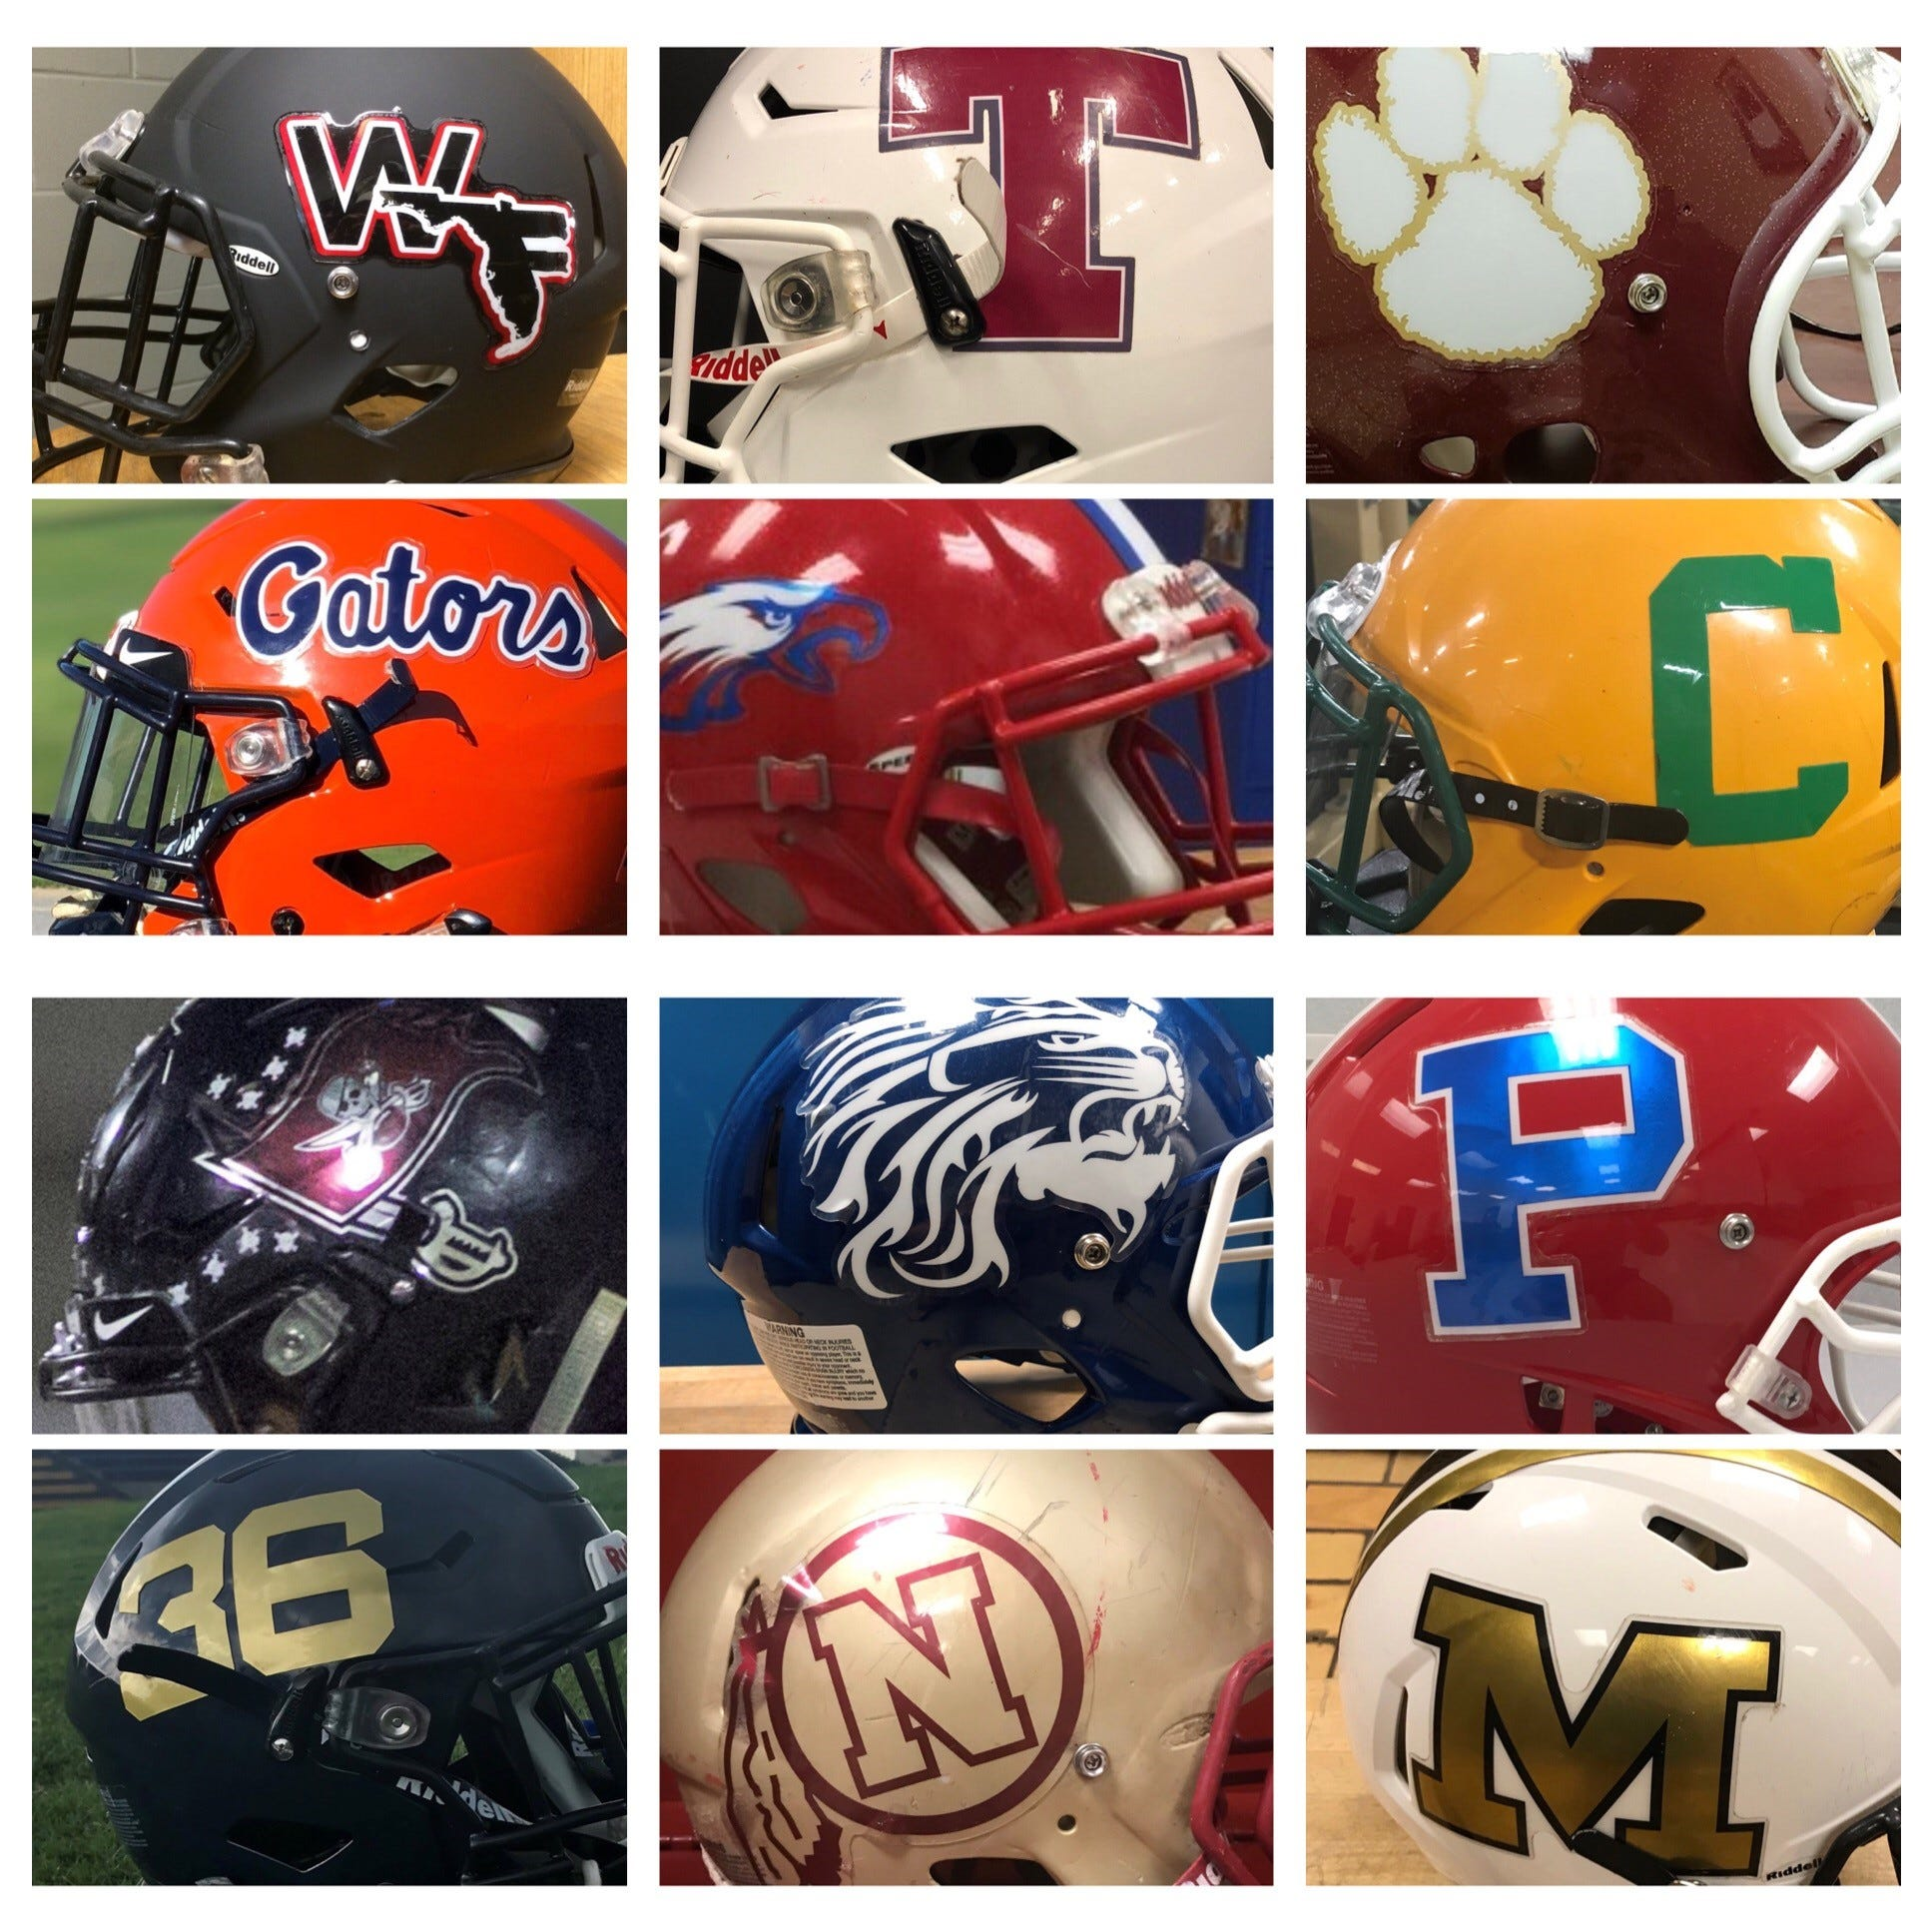 PNJ Helmet Wars allows you to vote for what you think is the best helmet for area schools.